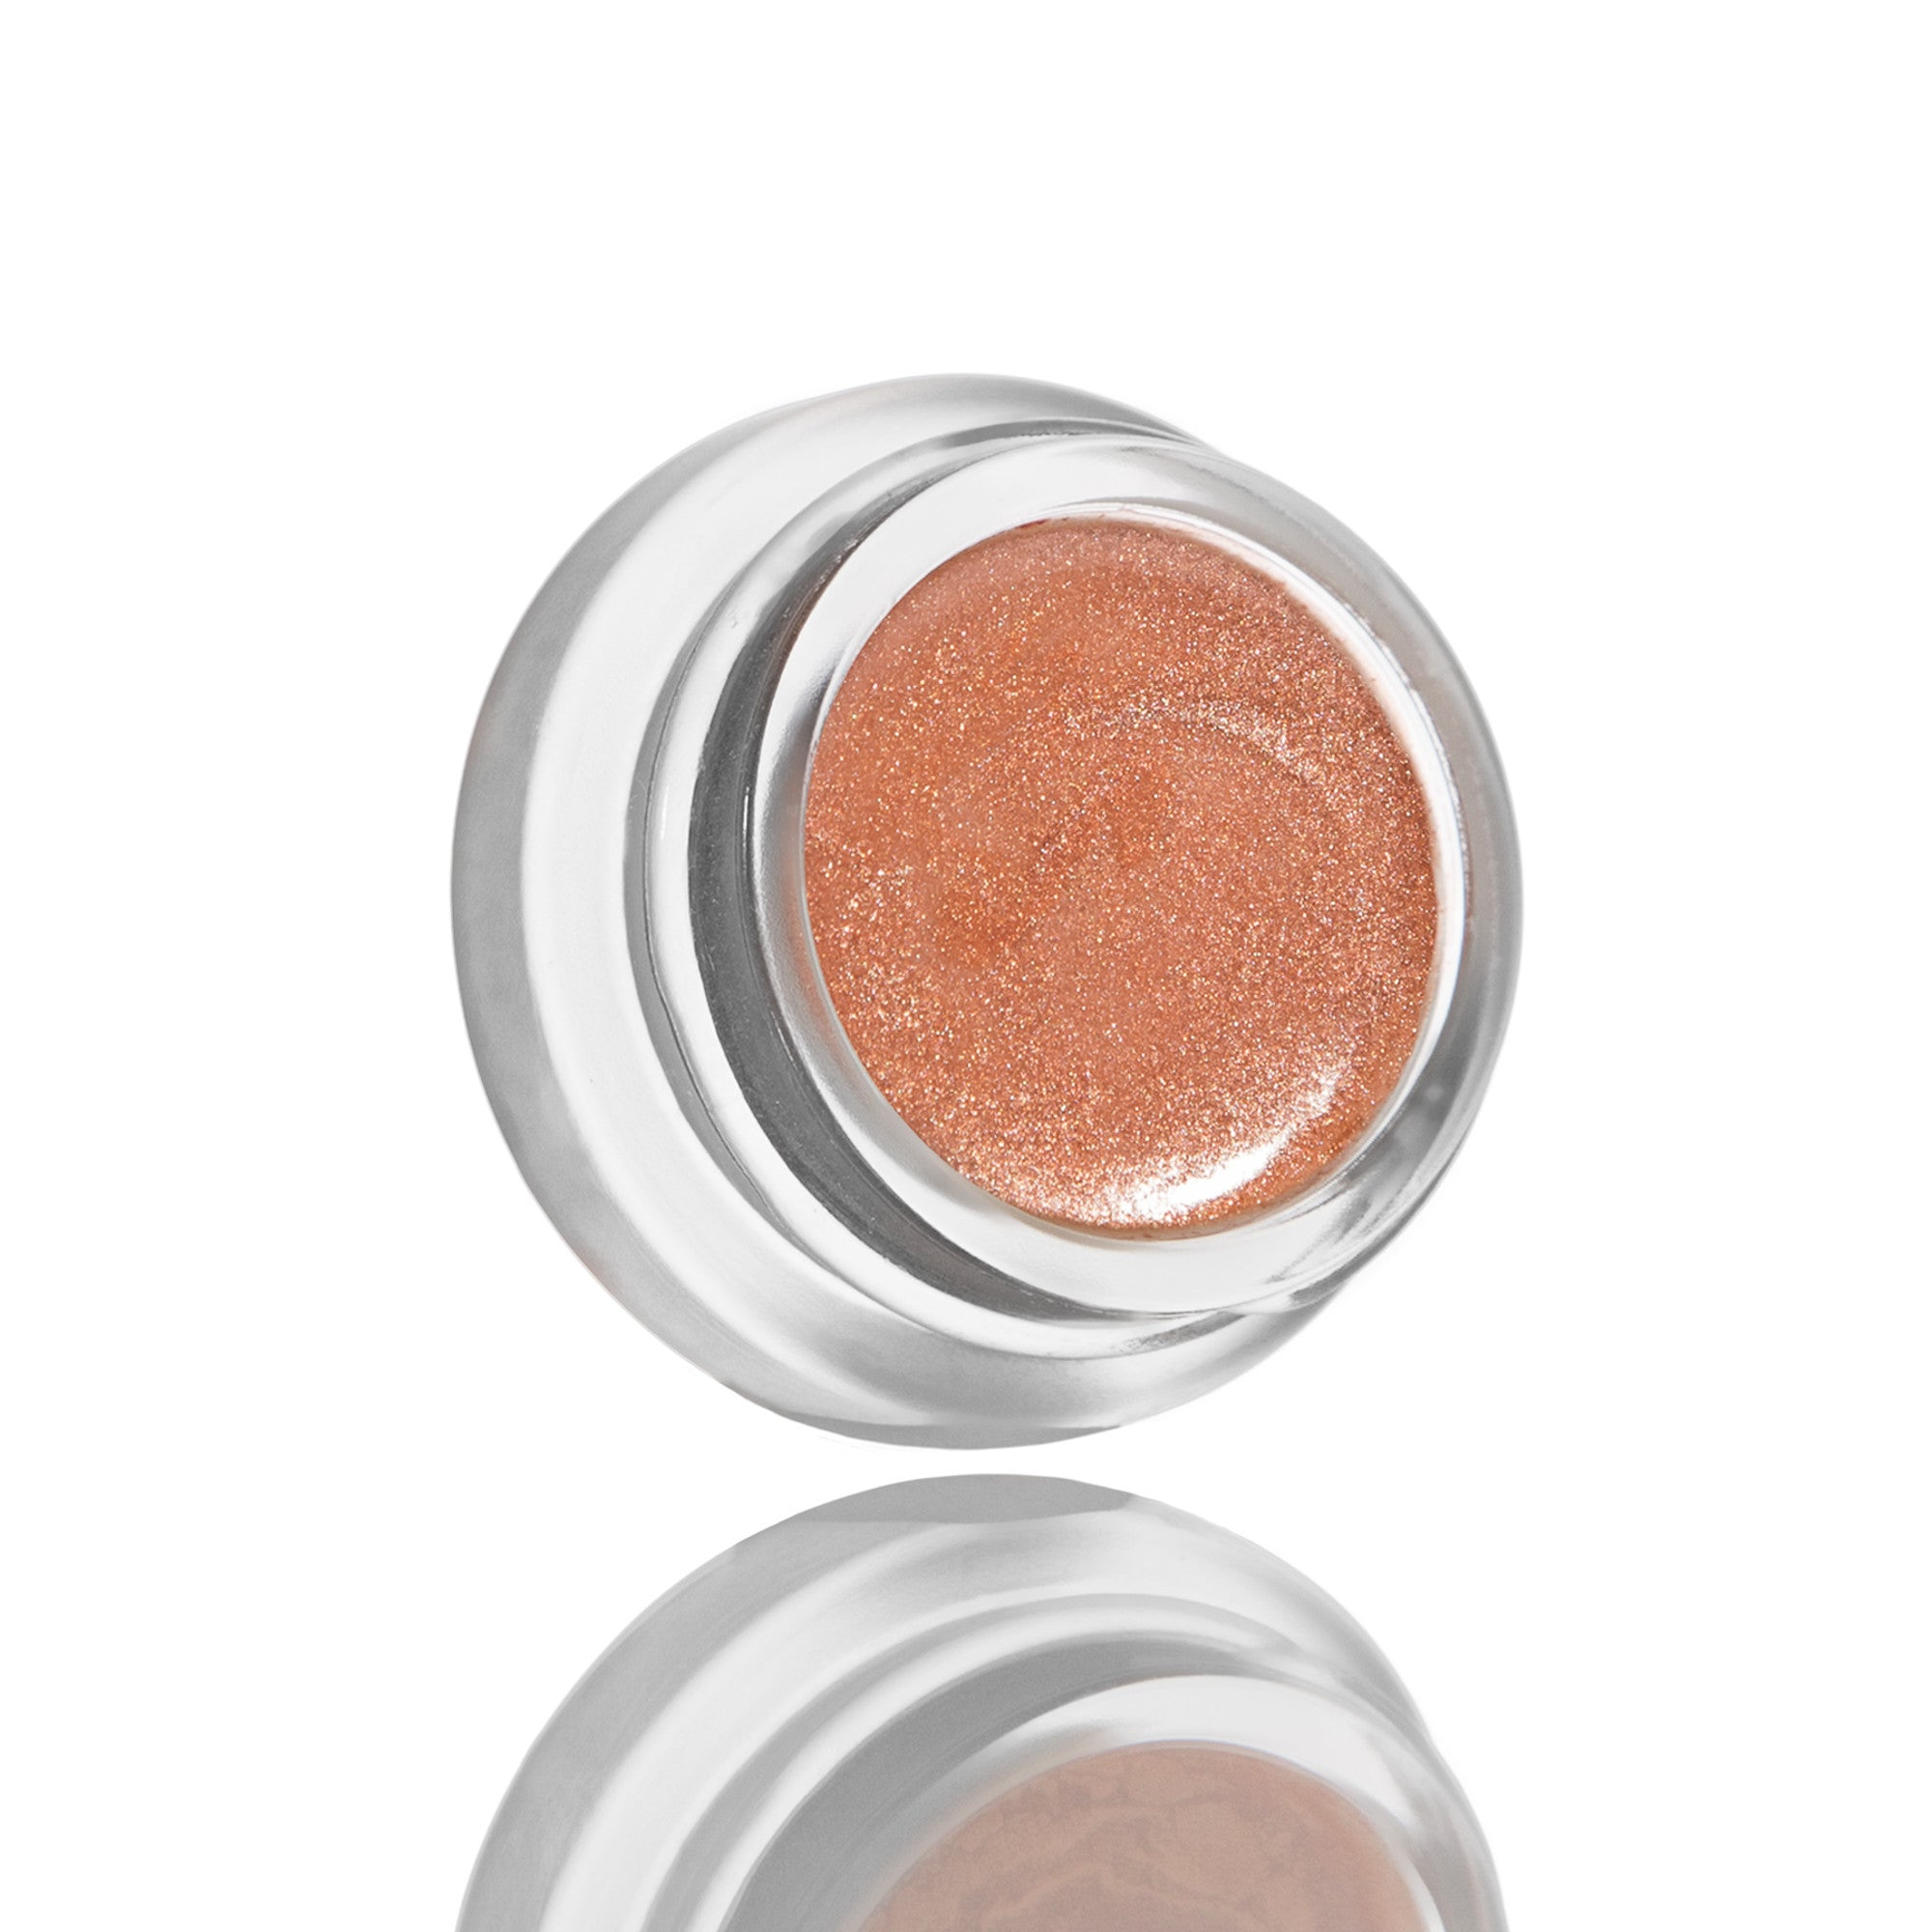 Radiant Creme Blush In Disco Queen Gloria - La Bella Figura Beauty